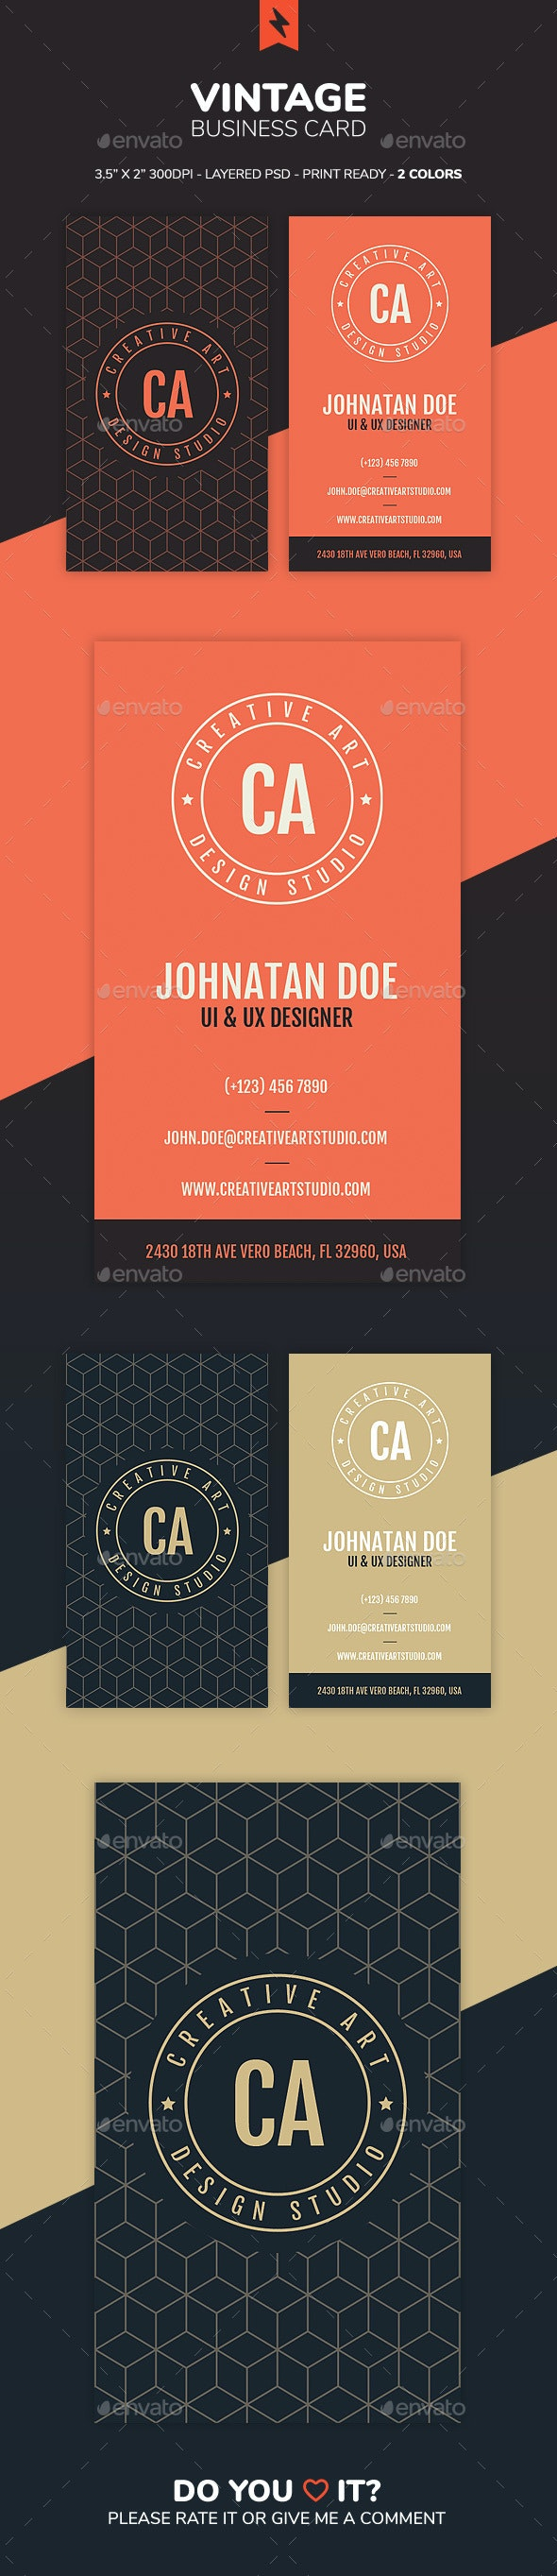 Vintage Business Card - Creative Business Cards